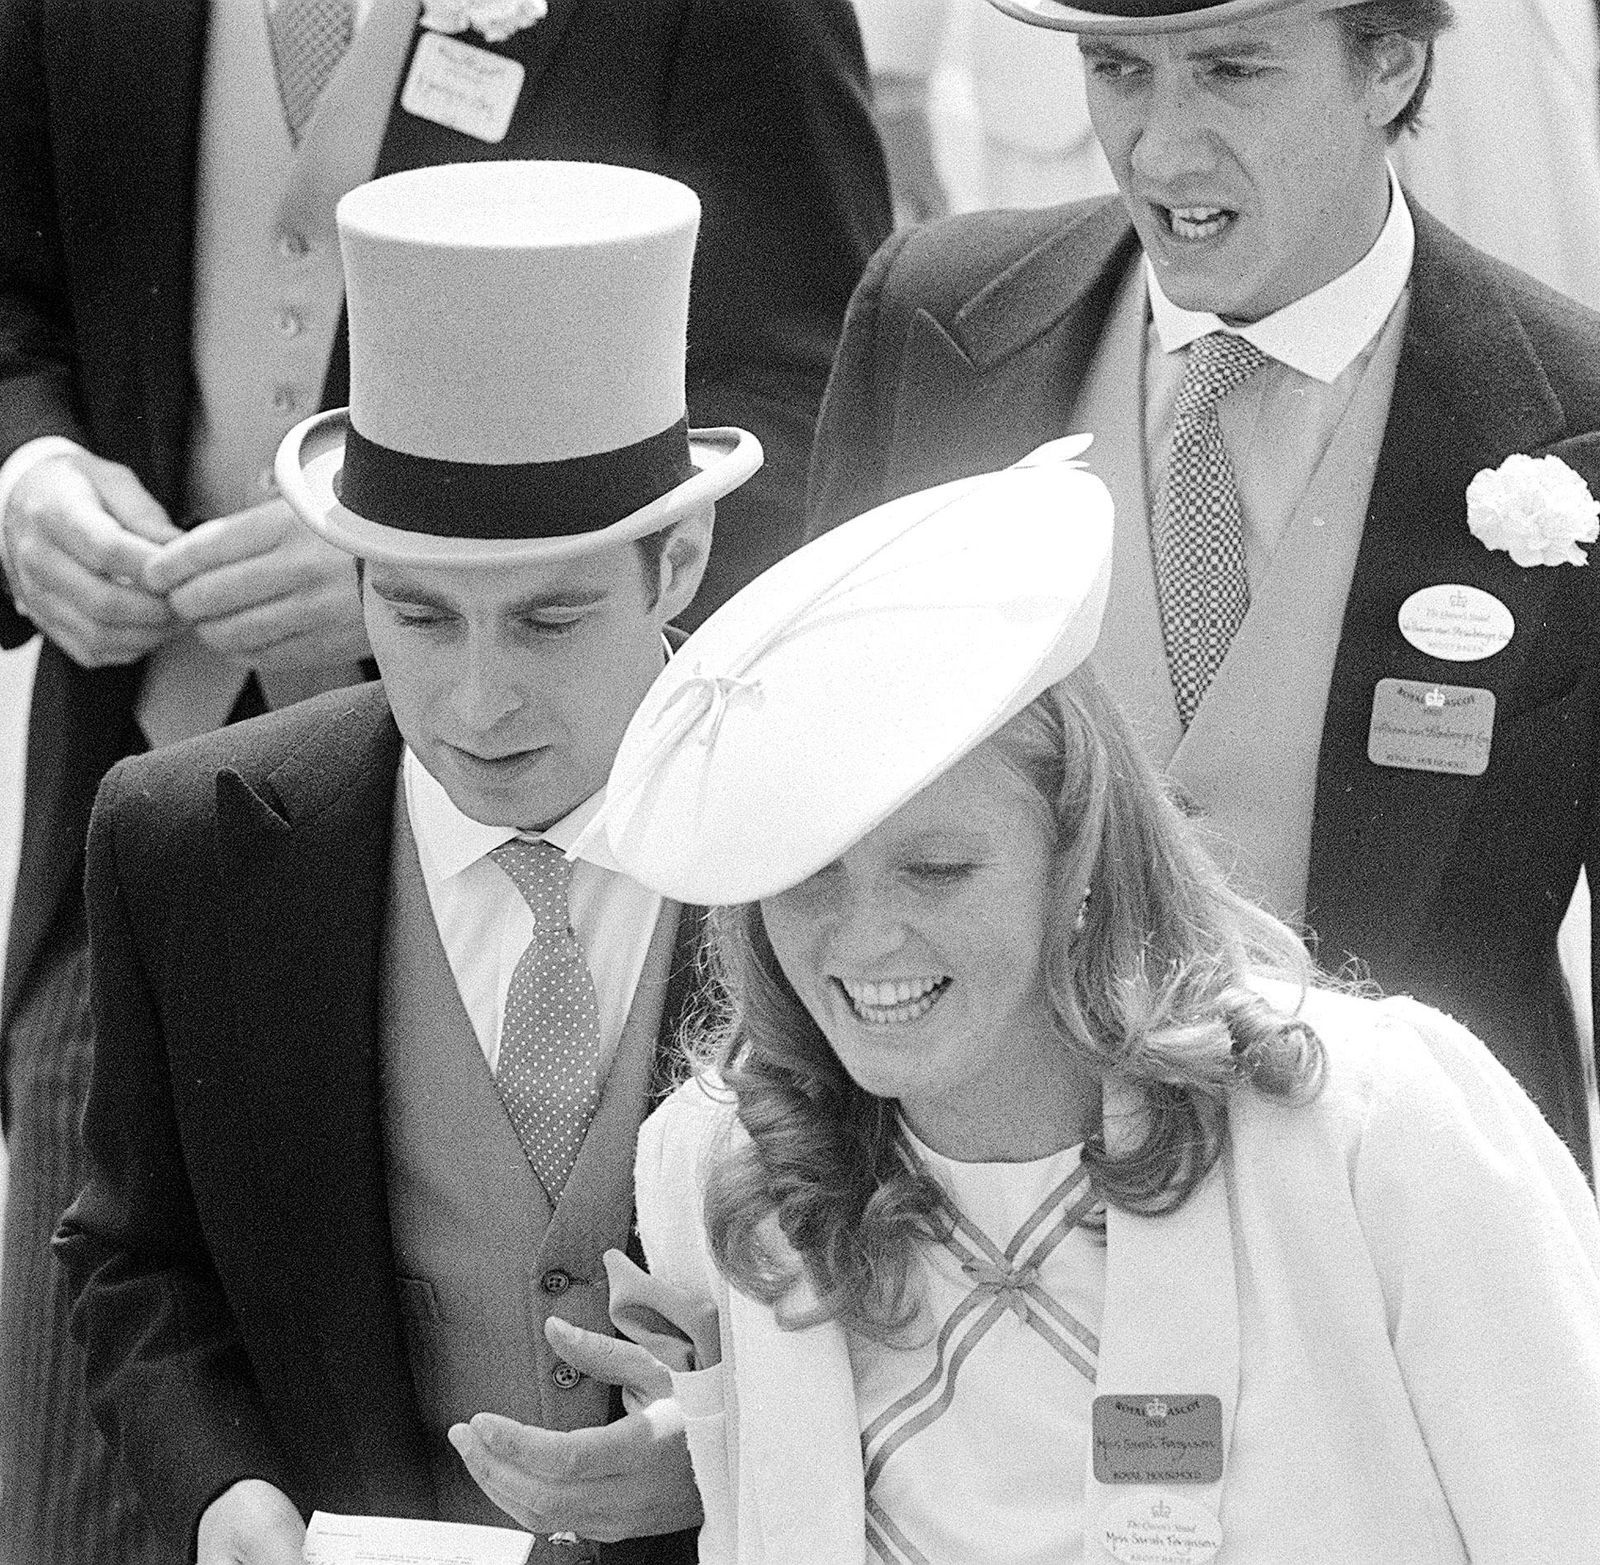 Sarah Ferguson and Prince Andrew's fascinating love story